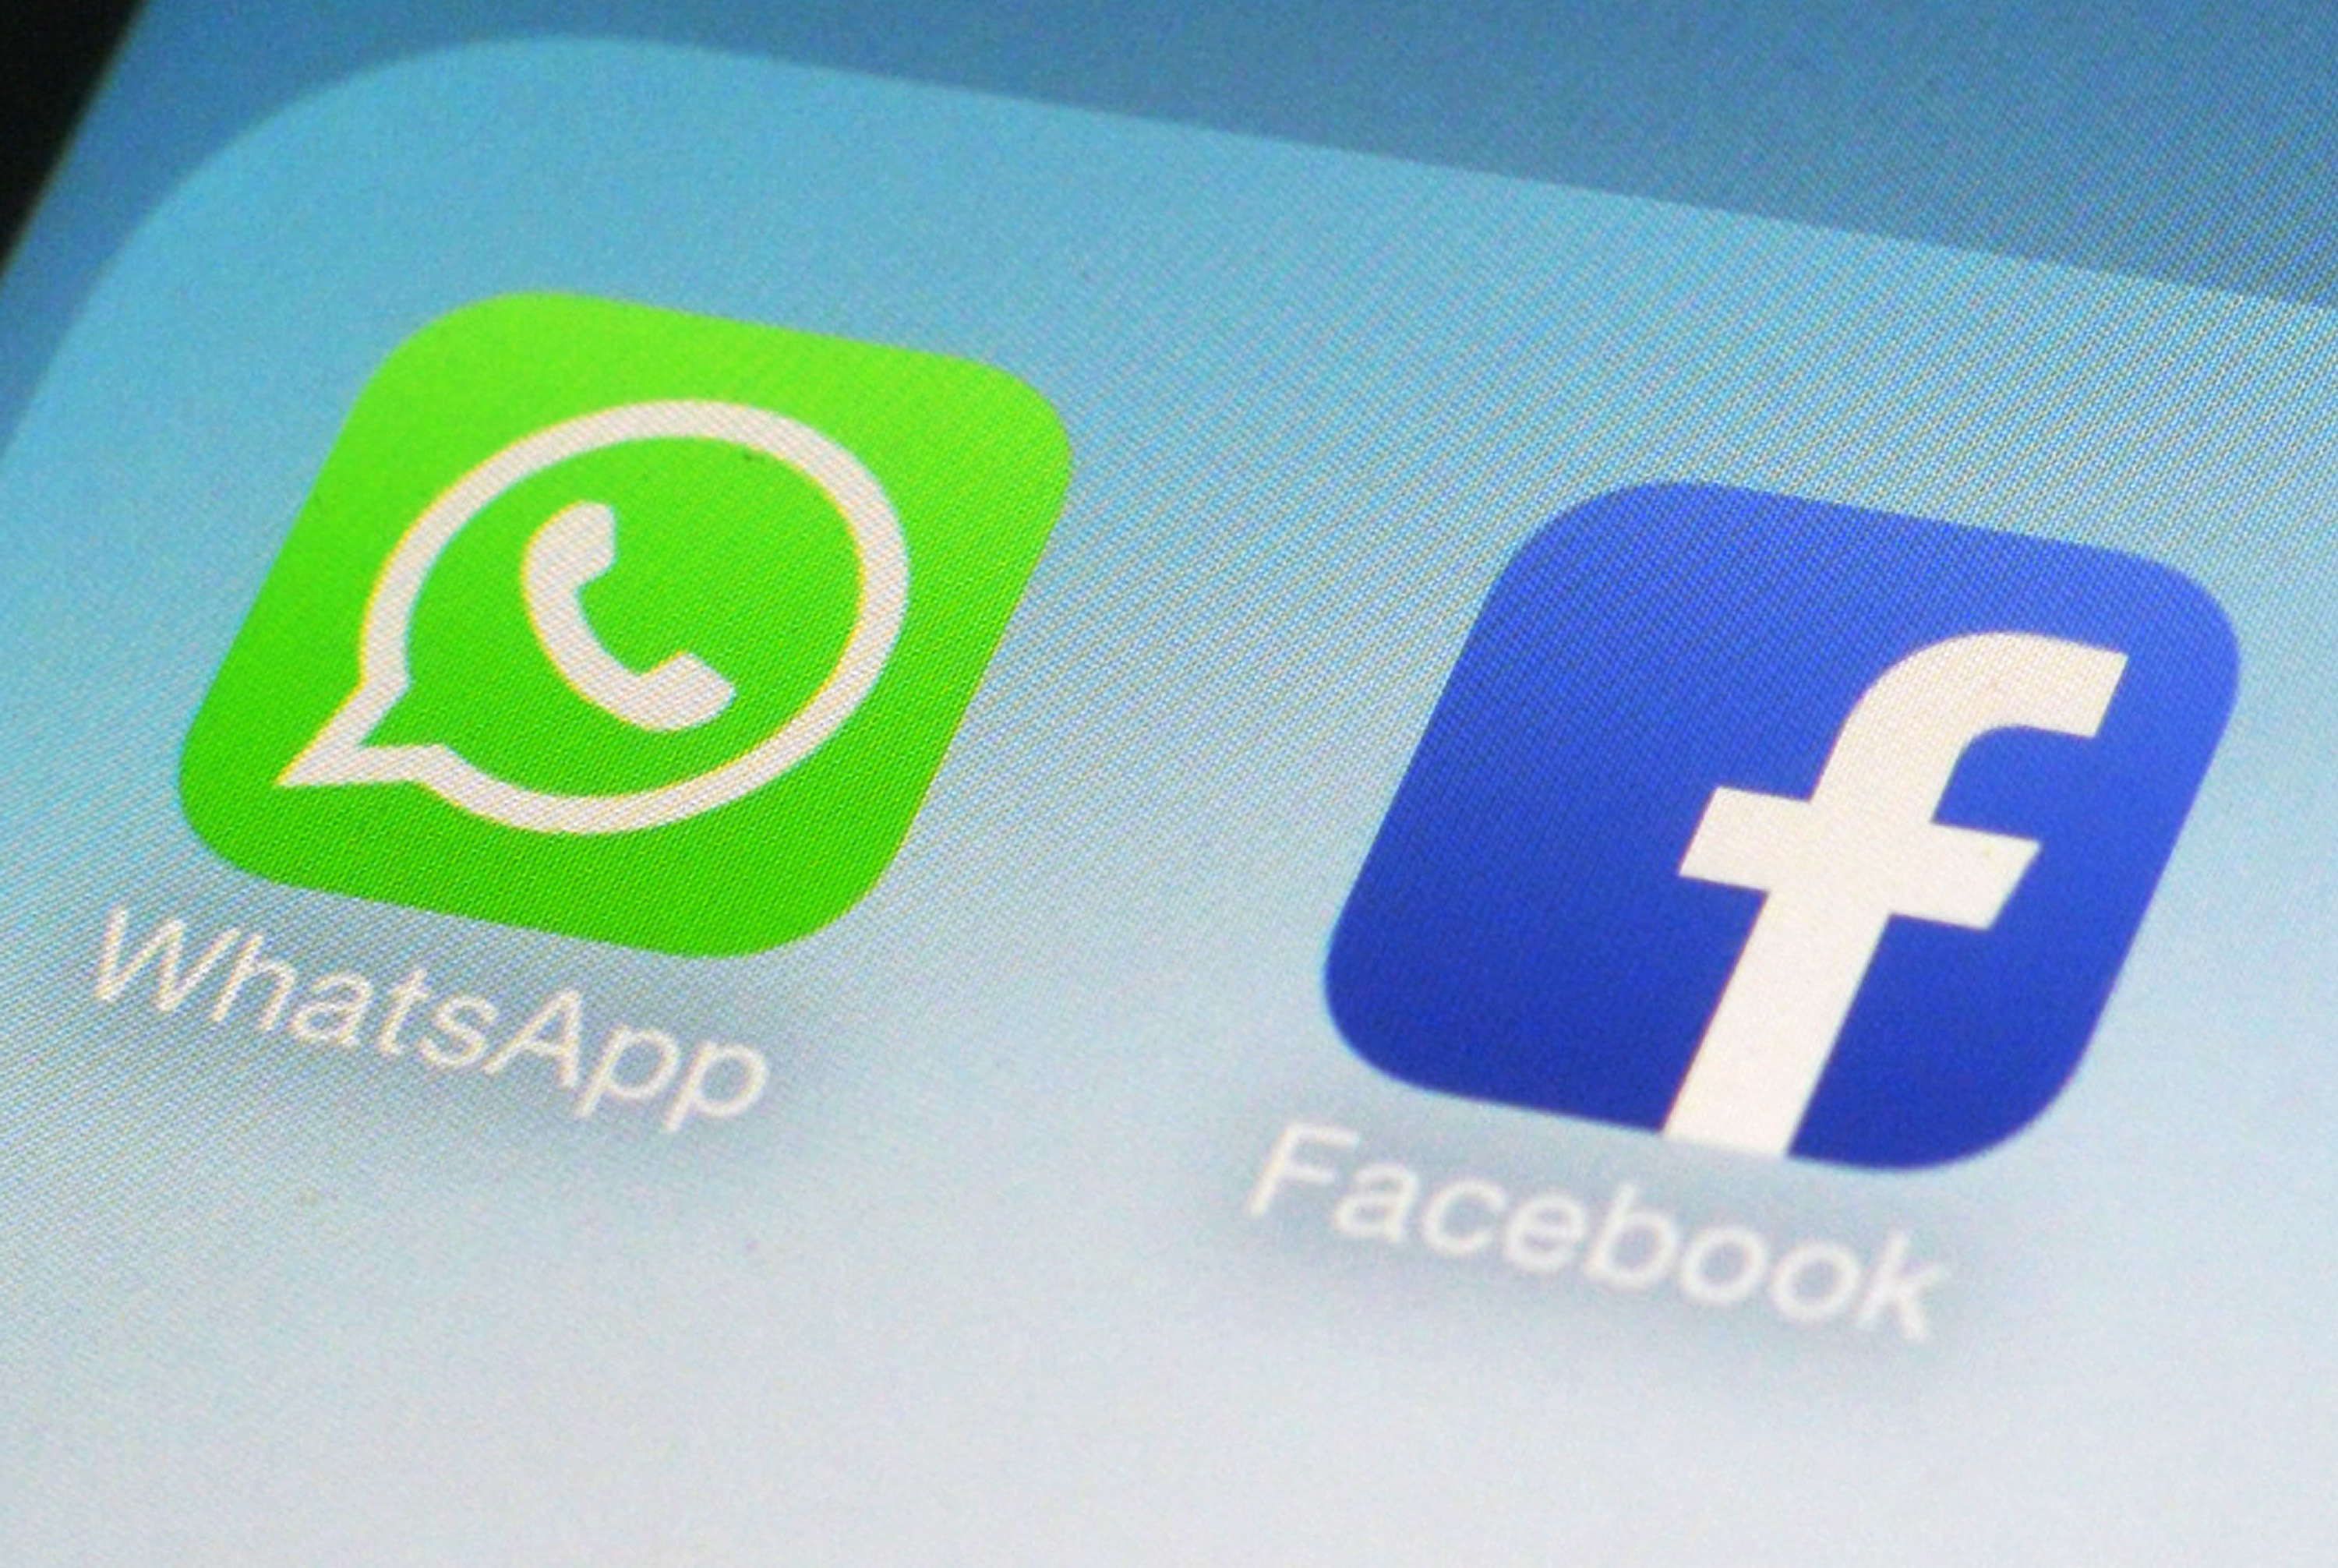 FILE - This Feb. 19, 2014, file photo, shows WhatsApp and Facebook app icons on a smartphone in New York. Global messaging service WhatsApp says it will start sharing the phone numbers of its users with Facebook, its parent company. That means WhatsApp users could soon start seeing more targeted ads on Facebook, although not on the messaging service itself. (AP Photo/Patrick Sison, File)